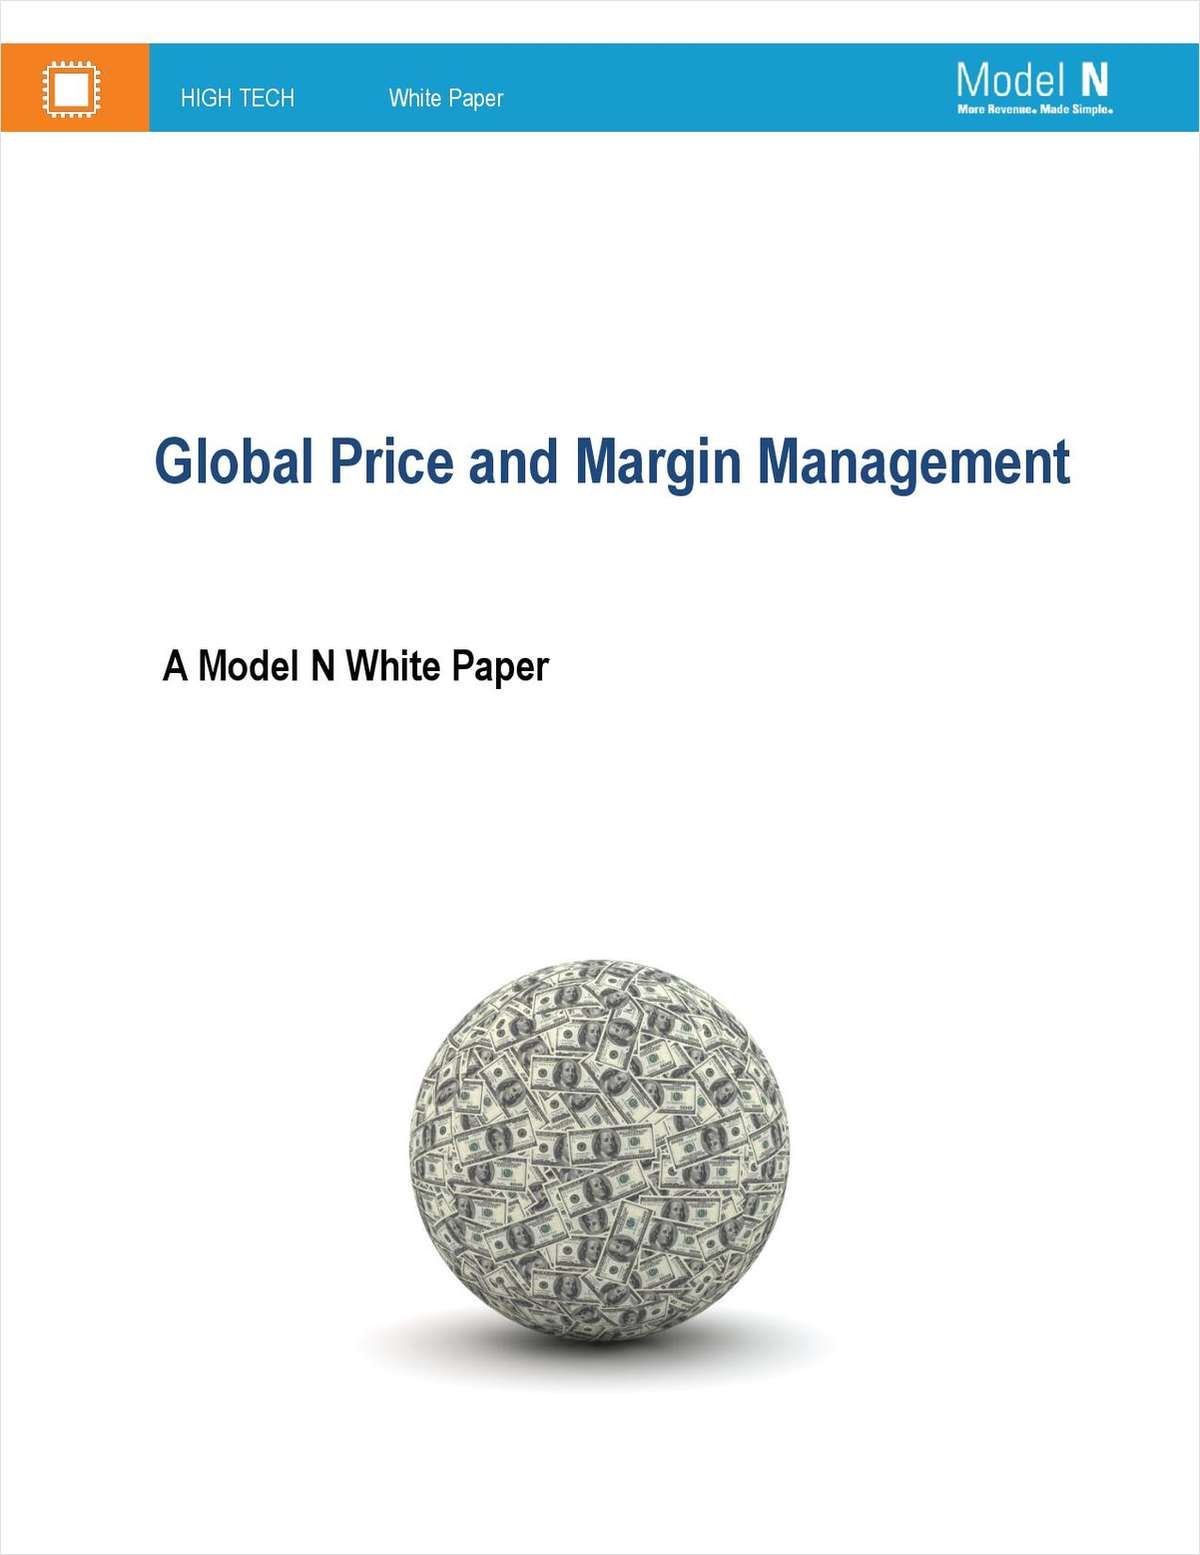 Global Price and Margin Management